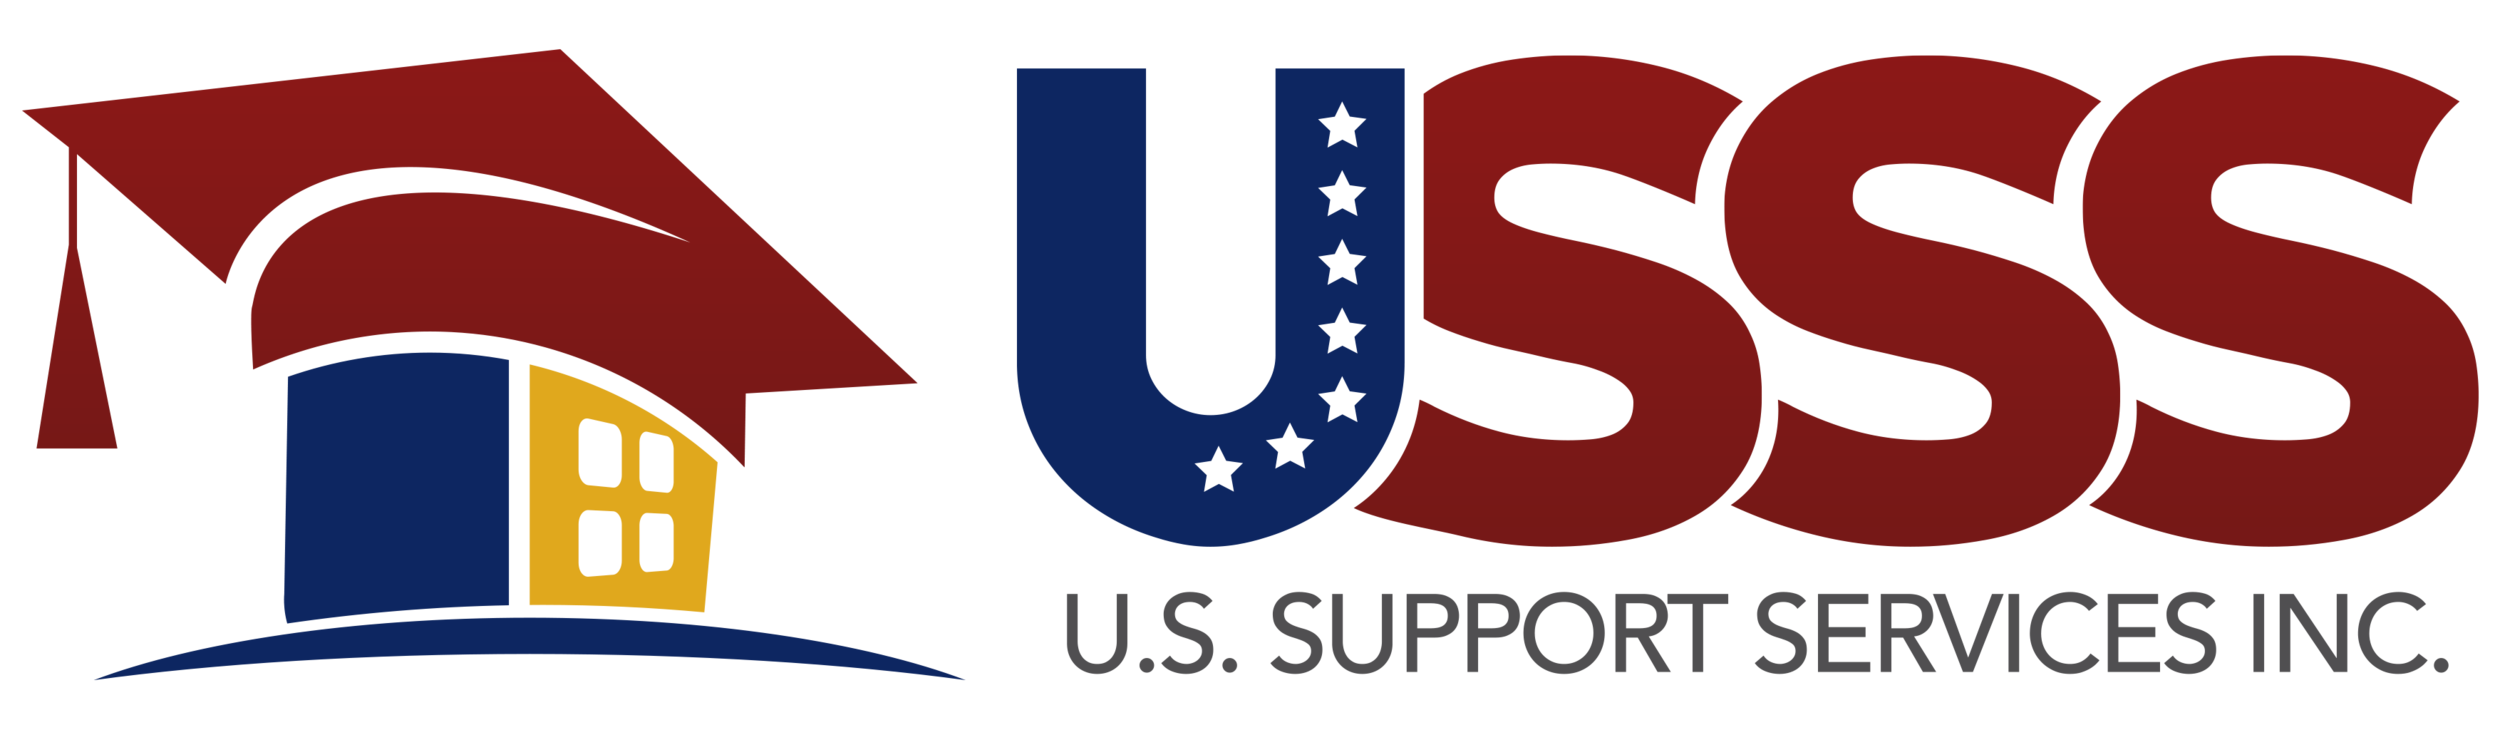 U.S. Support Services Inc. - Location 1: 5044 Bakman Ave, North Hollywood, CA 91601Location 2: 1439 N Poinsettia Pl., Los Angeles, CA 90046Please contact 310-887-0777 or info@usssinc.net for more information.